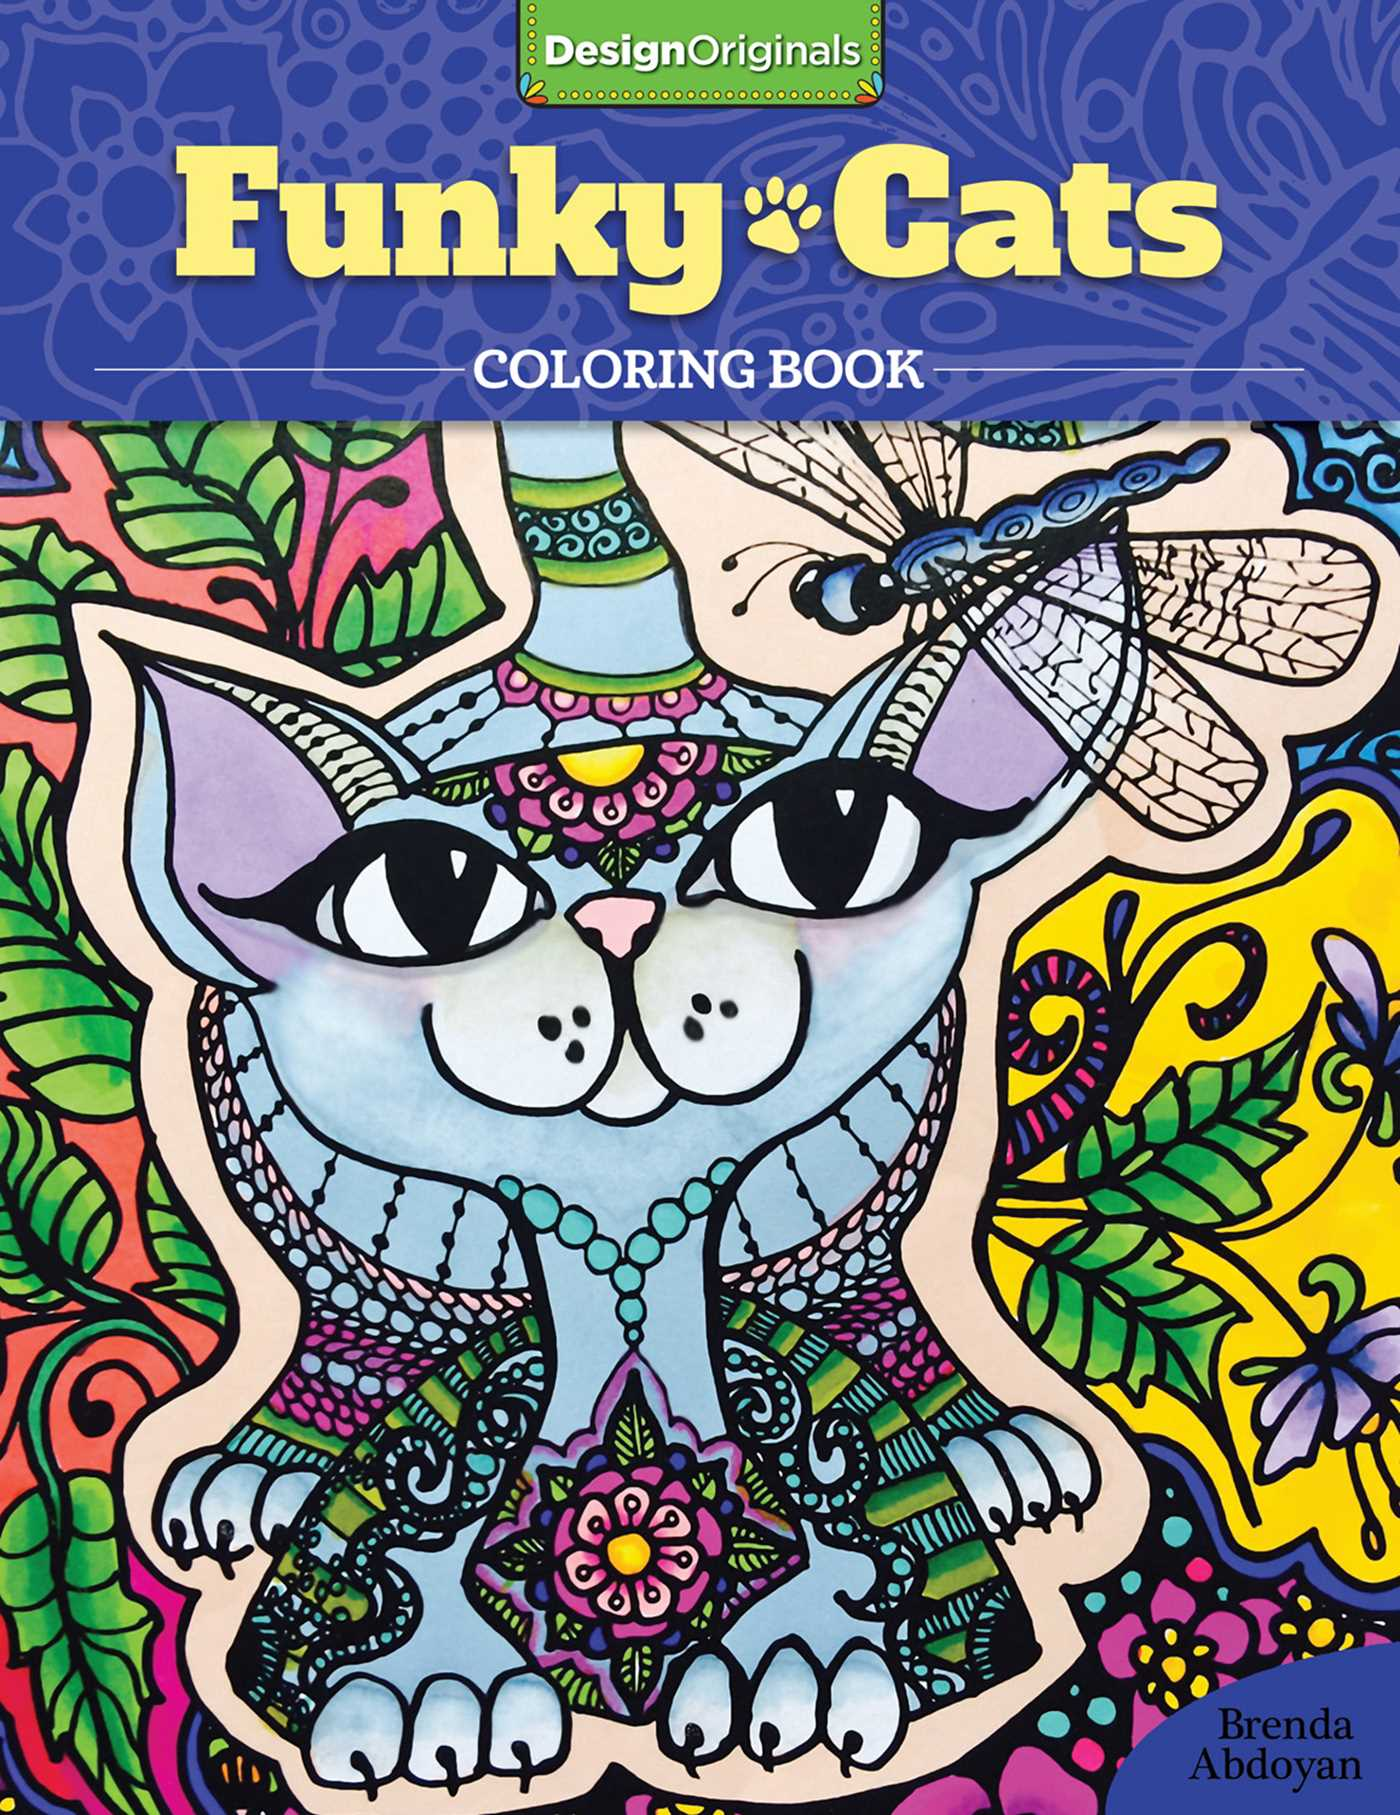 Book Cover Image Jpg Funky Cats Coloring